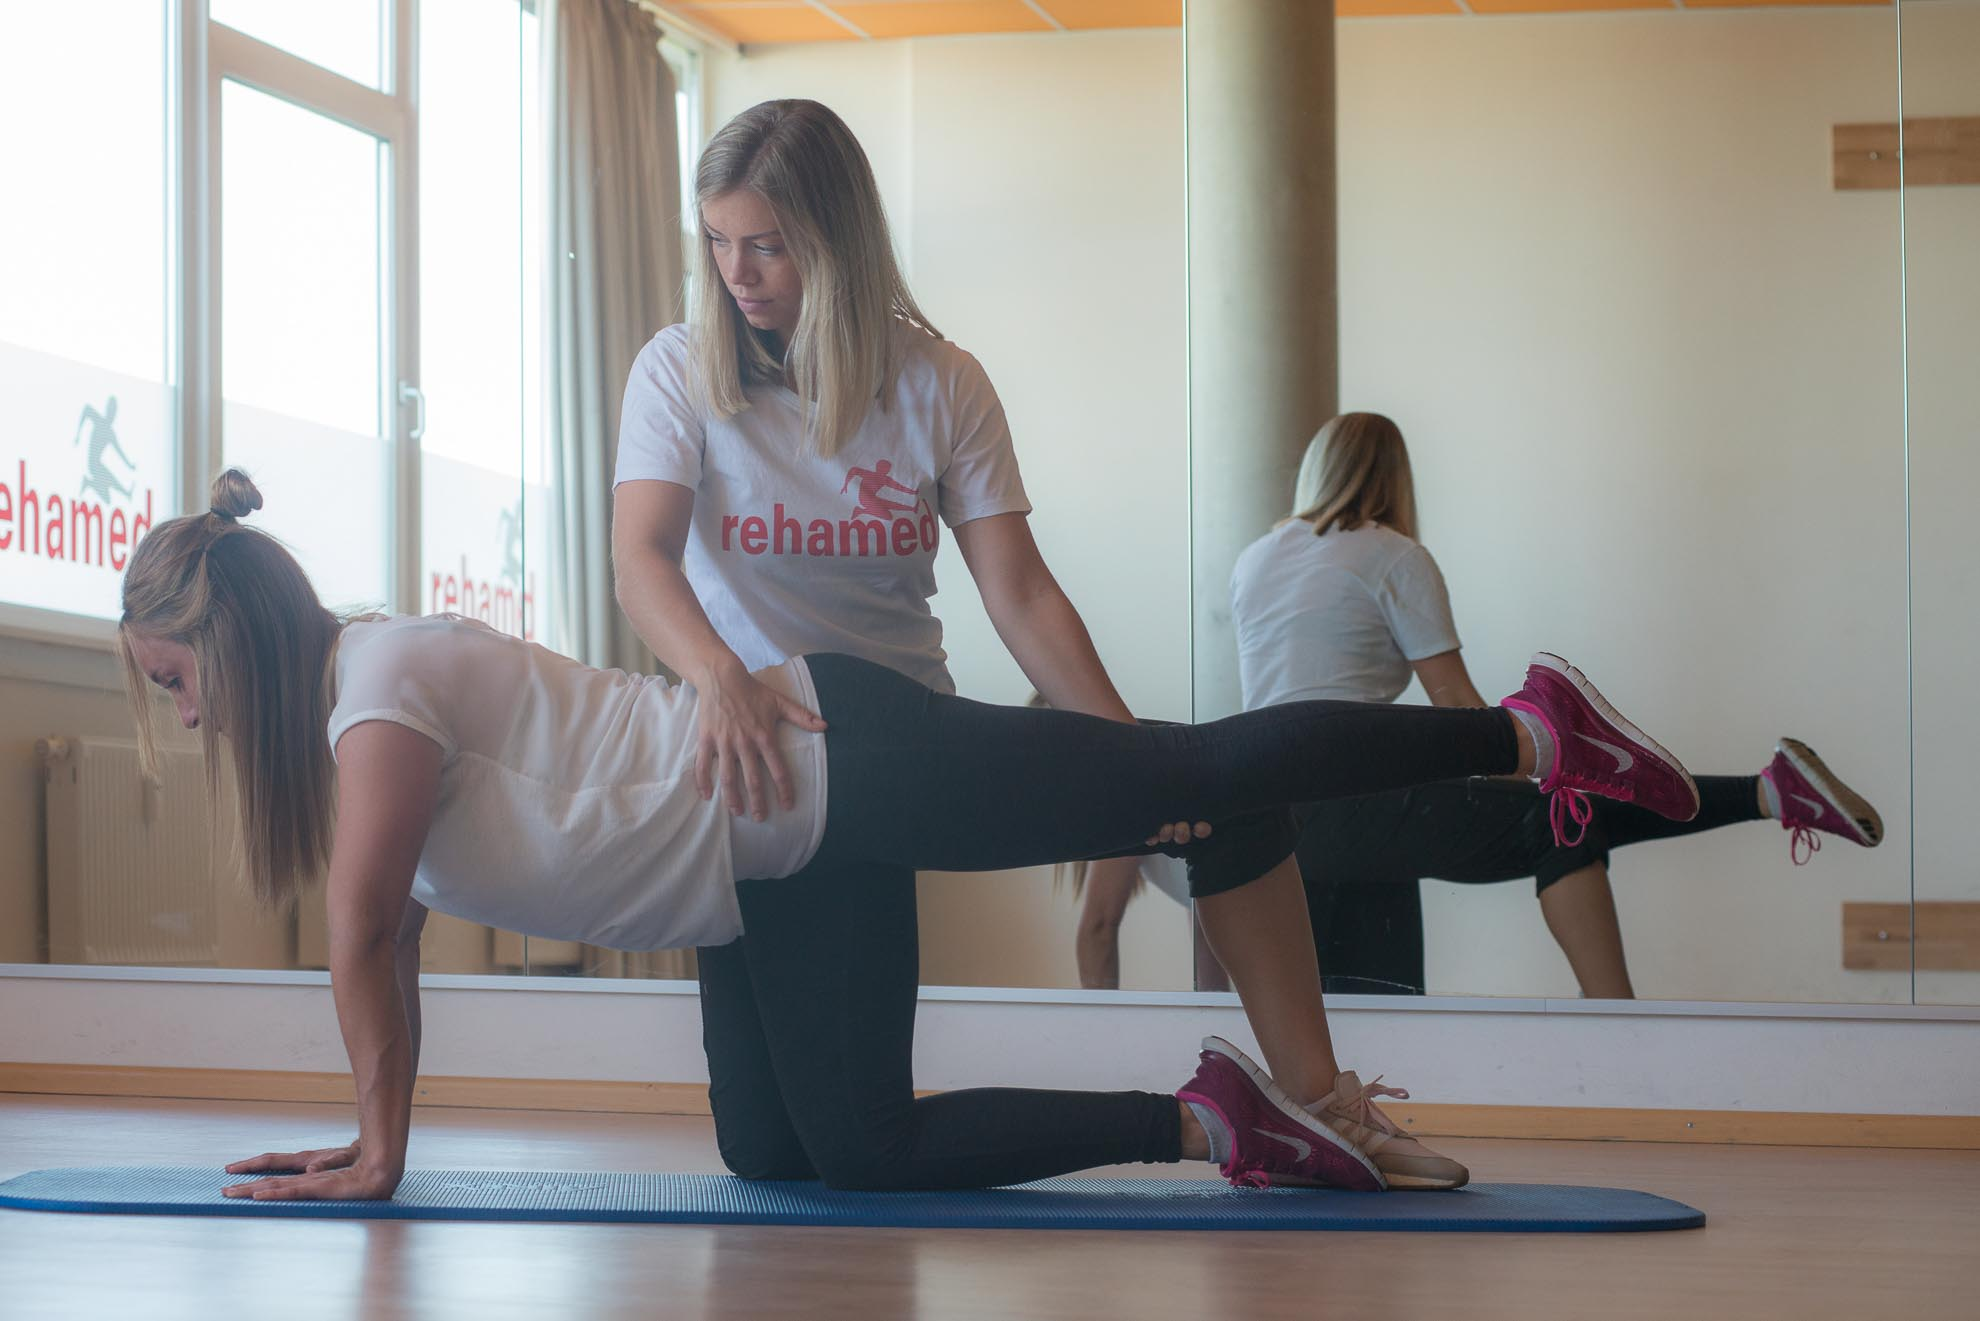 fitness-rehamed-indikationsgebiete-1